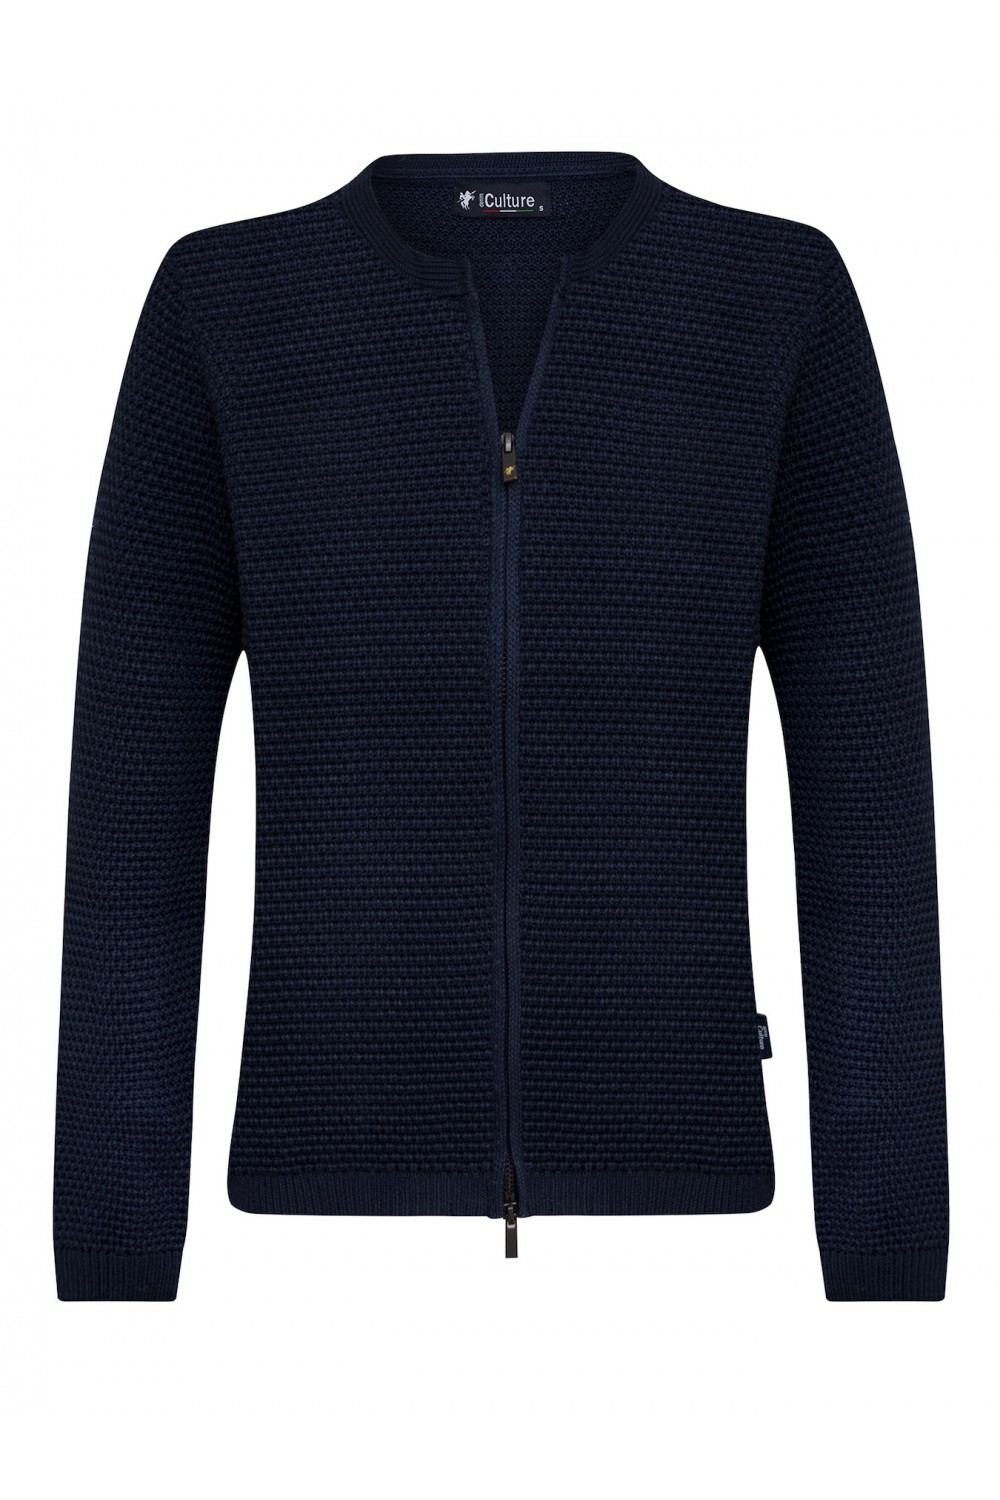 Women's Cardigan Zip Crew Neck Navy